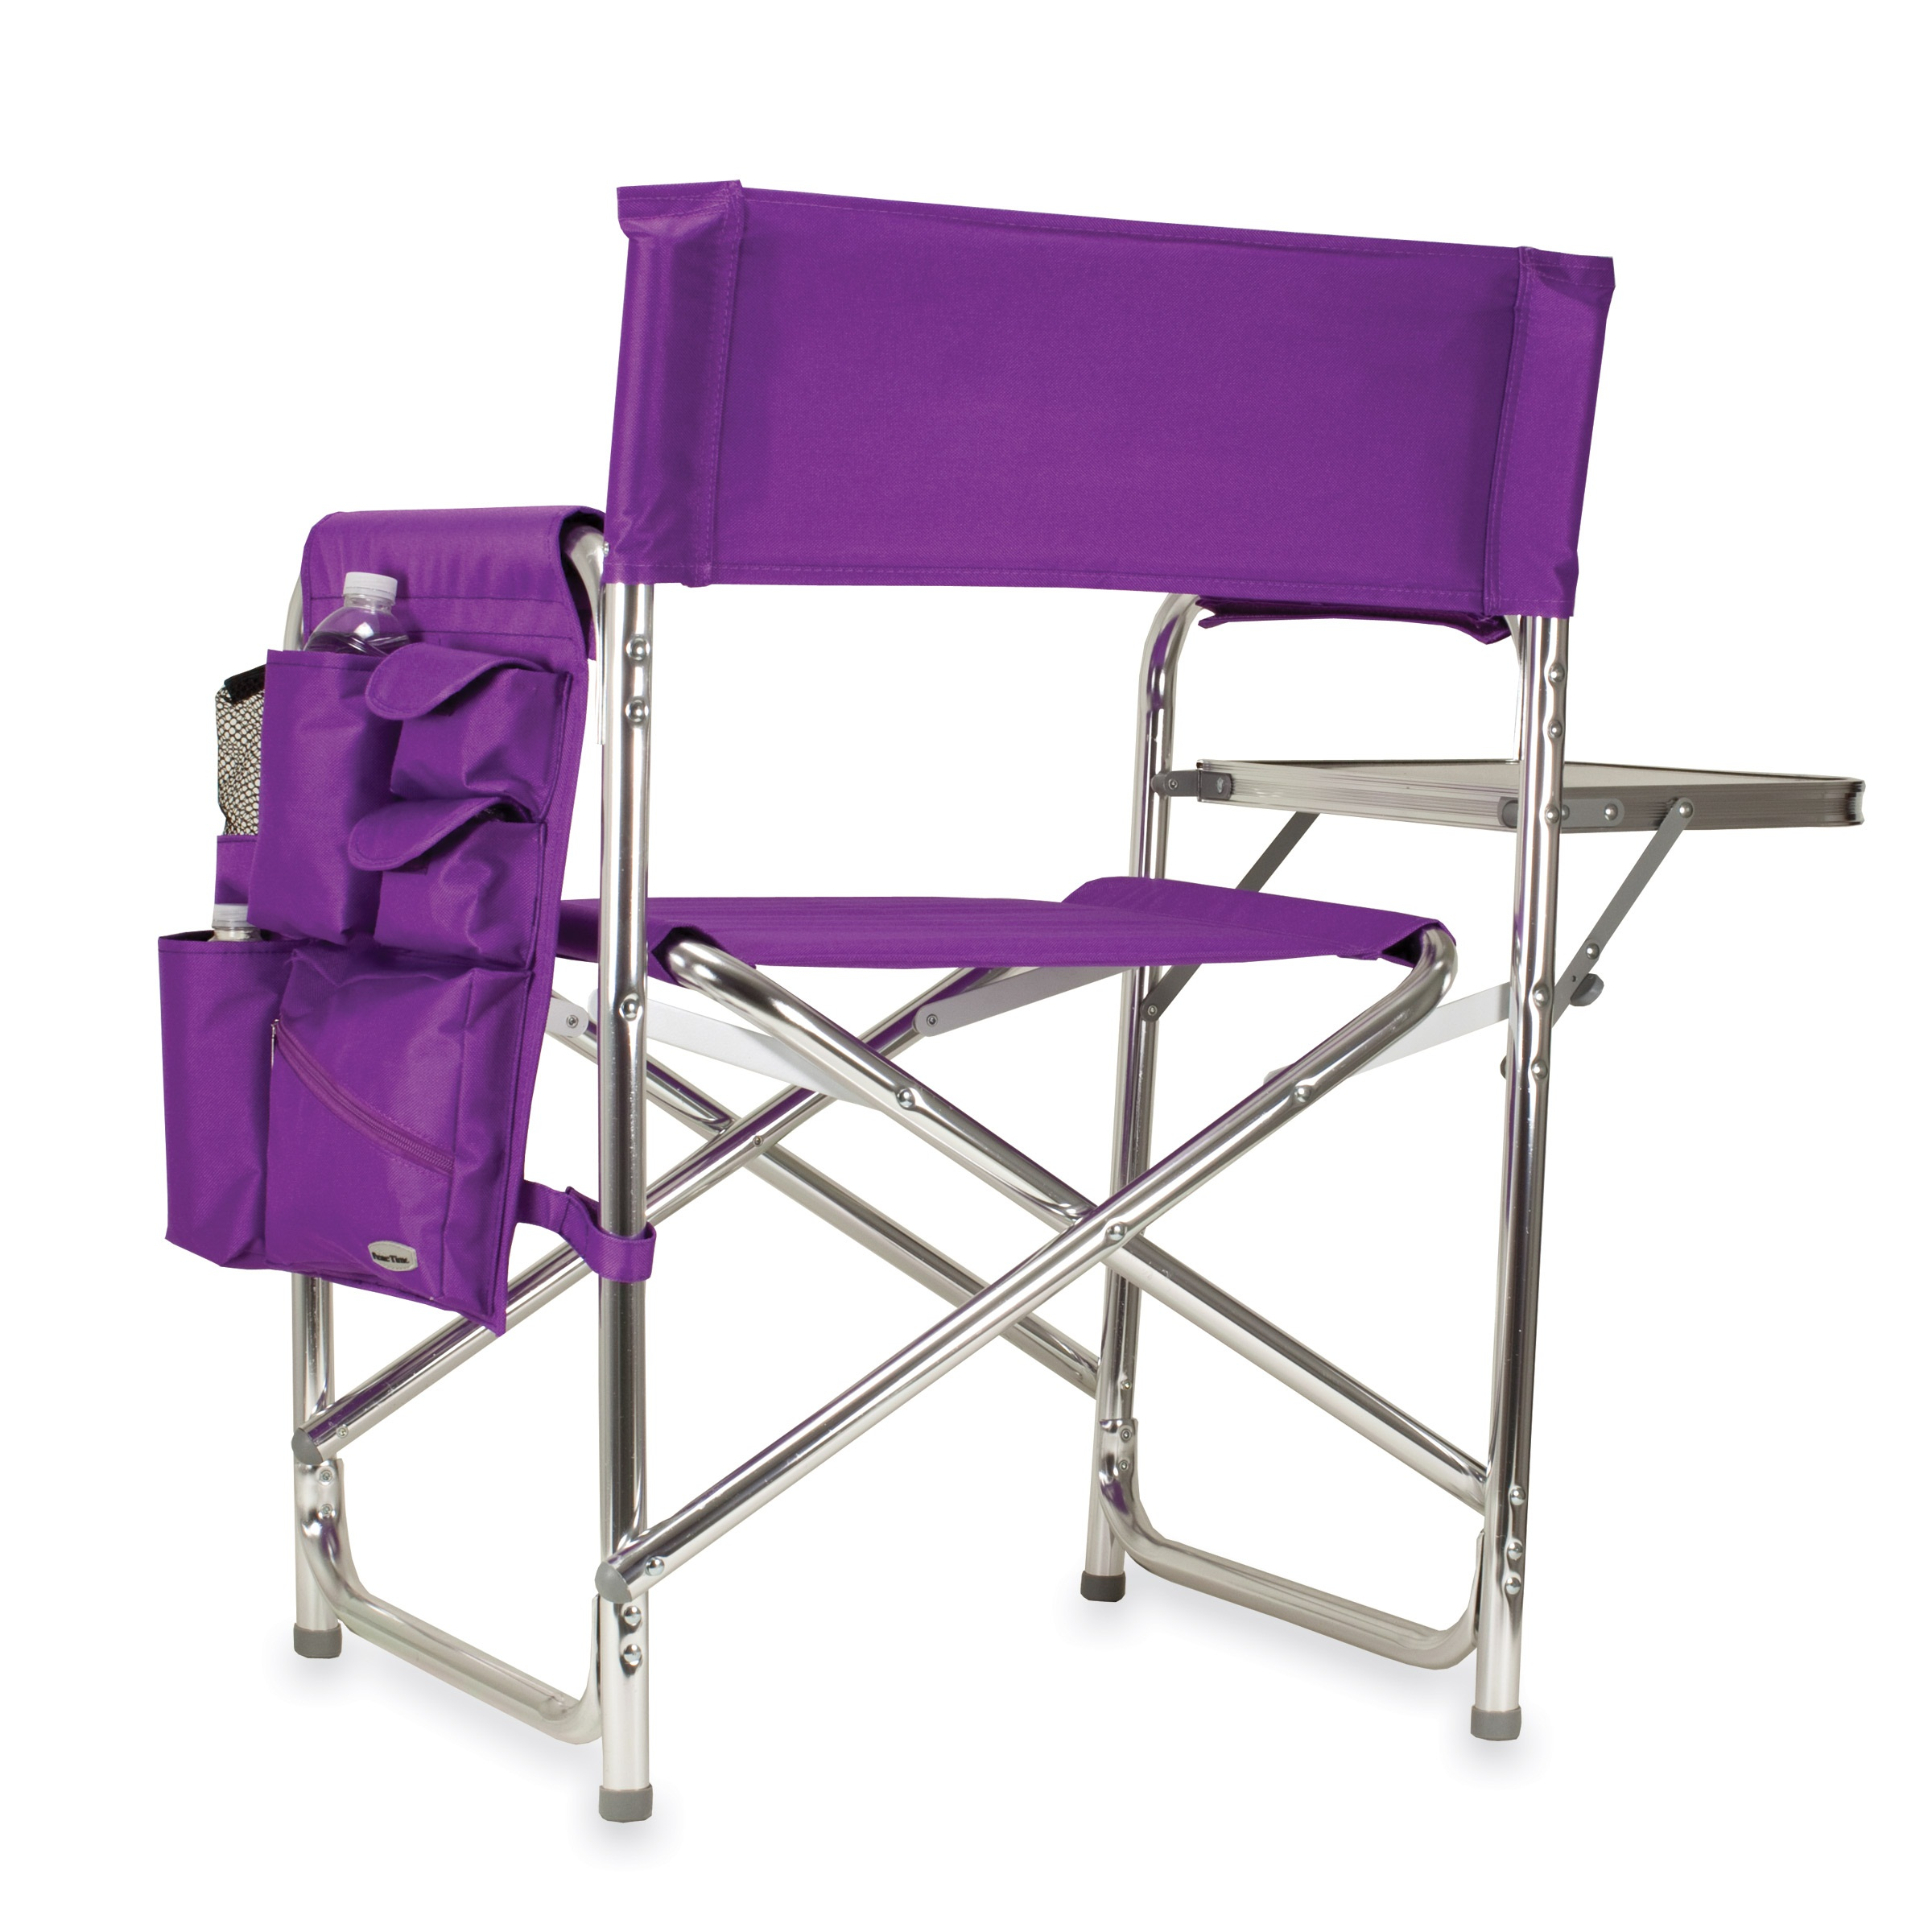 portable picnic chair seat pockets for school chairs time purple folding sports camping